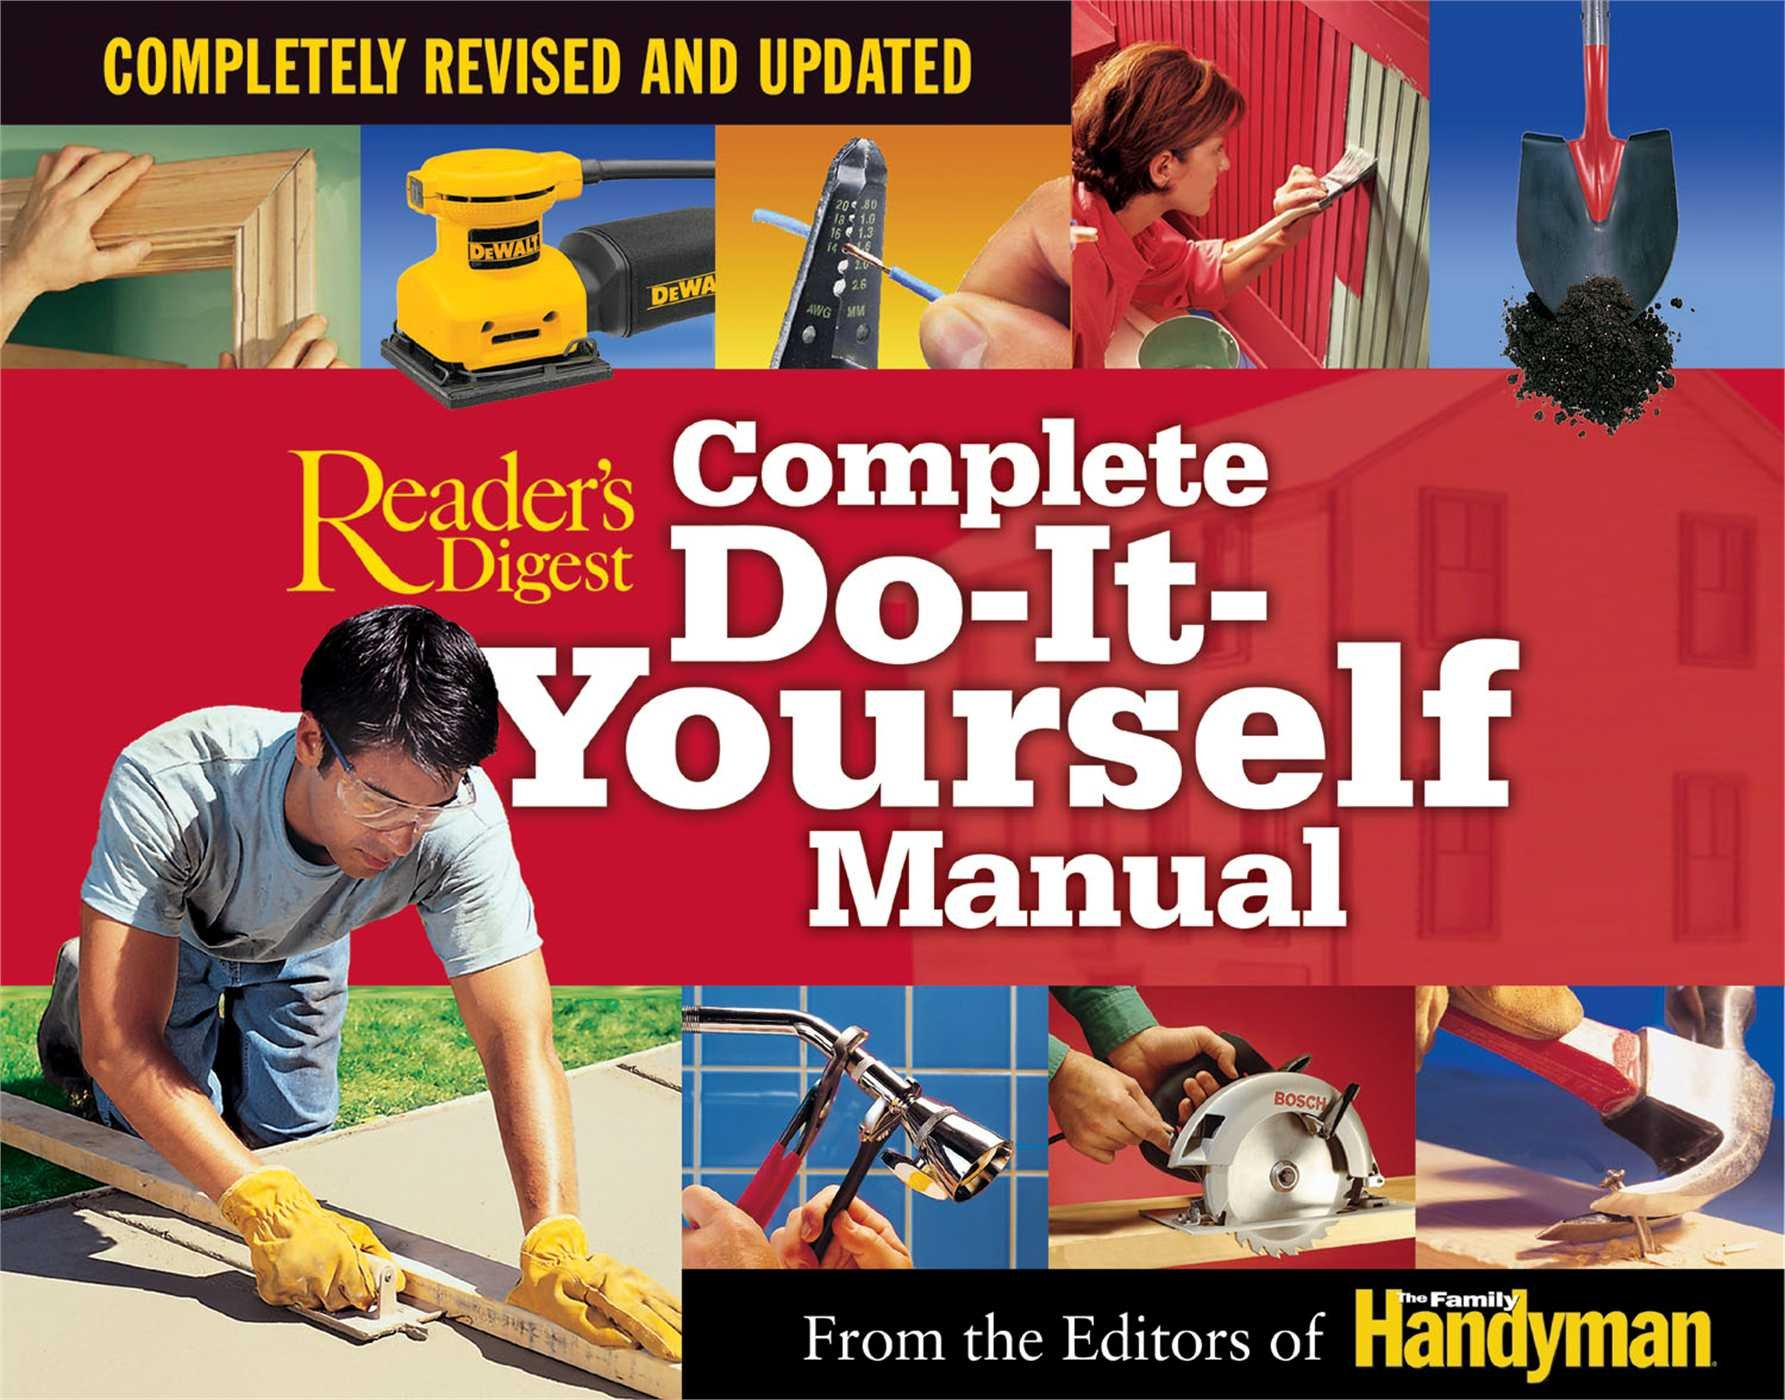 Complete do it yourself manual completely revised and updated complete do it yourself manual completely revised and updated editors of the family handyman 9780762105793 amazon books solutioingenieria